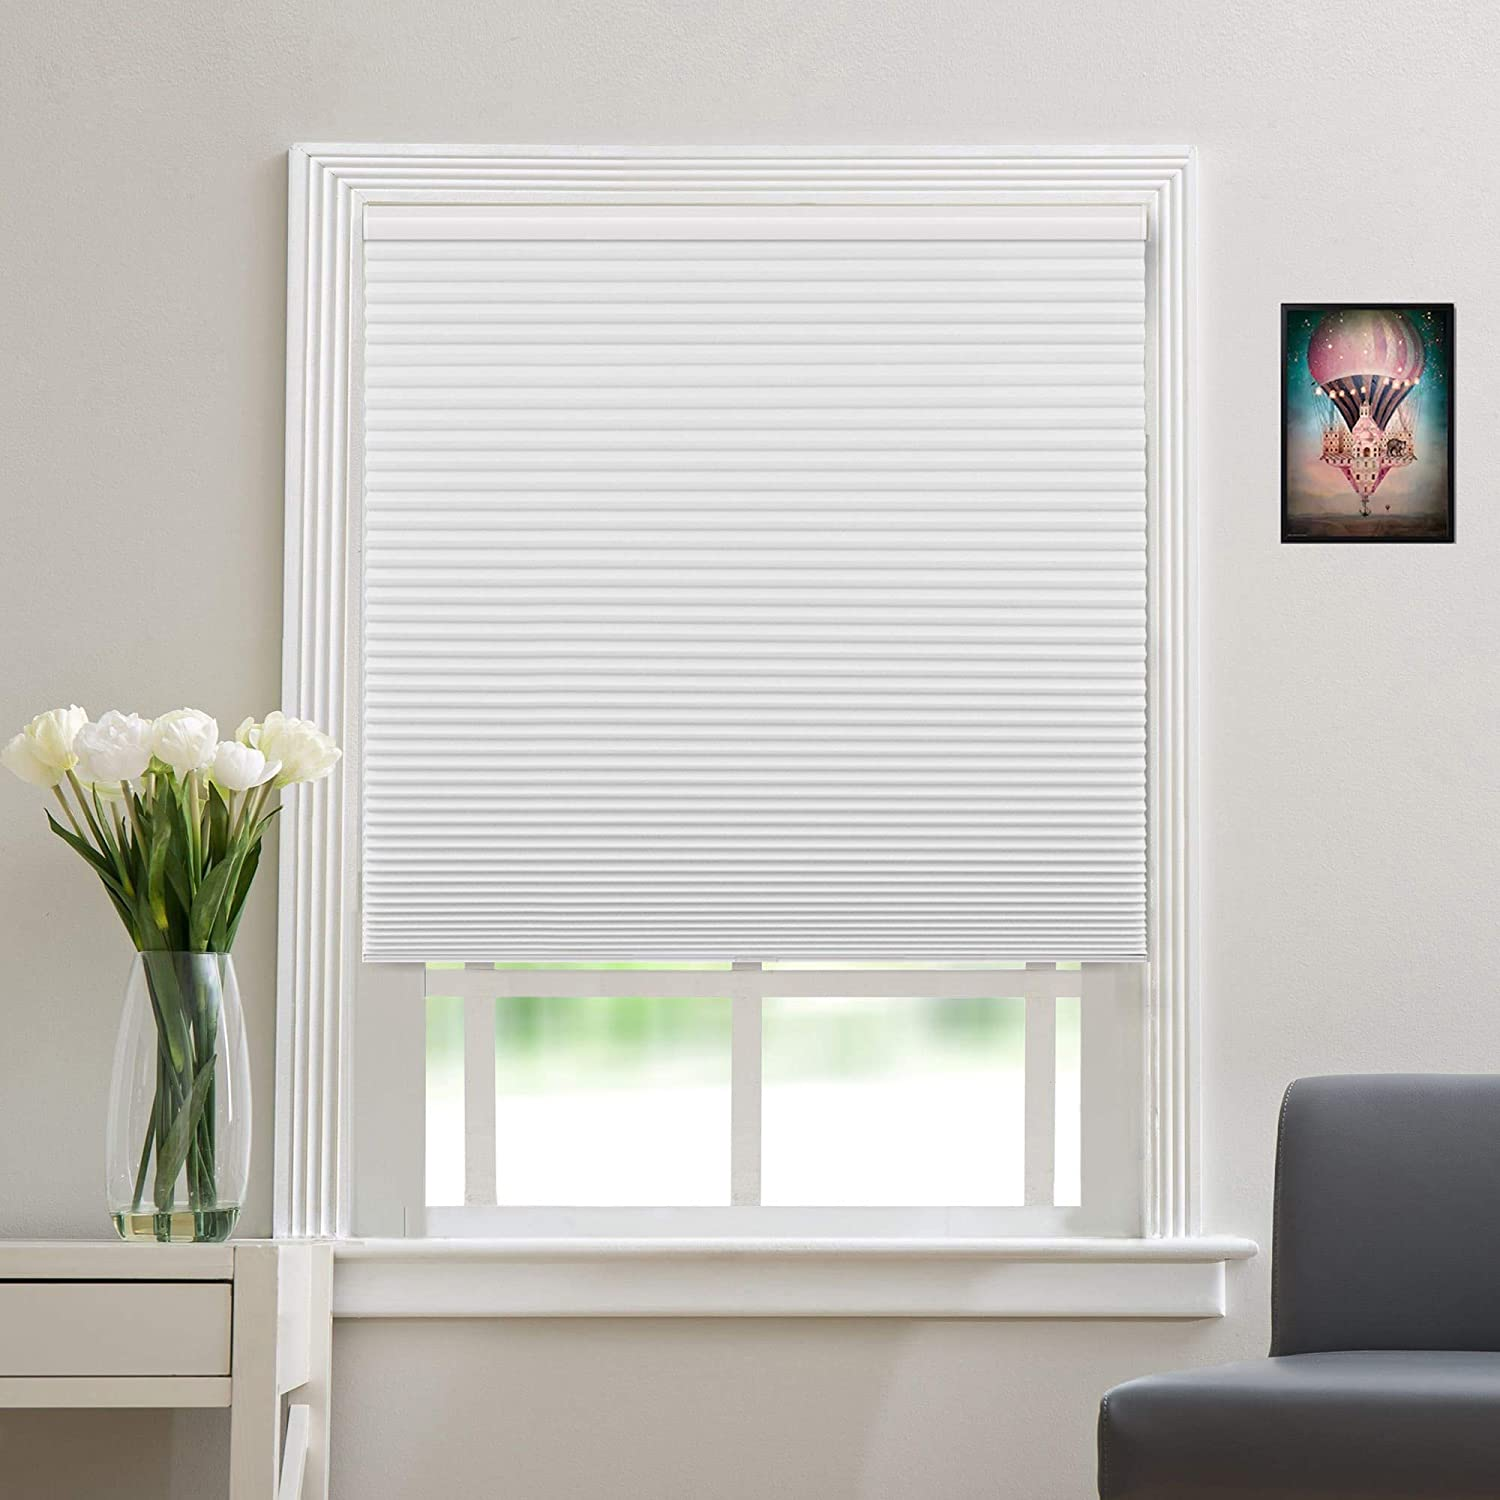 Blackout Window Shades Cordless Cellular Blinds for Window, Insulated Honeycomb Shades for Home Office Bedroom Living Room [White-Blackout, Size 58